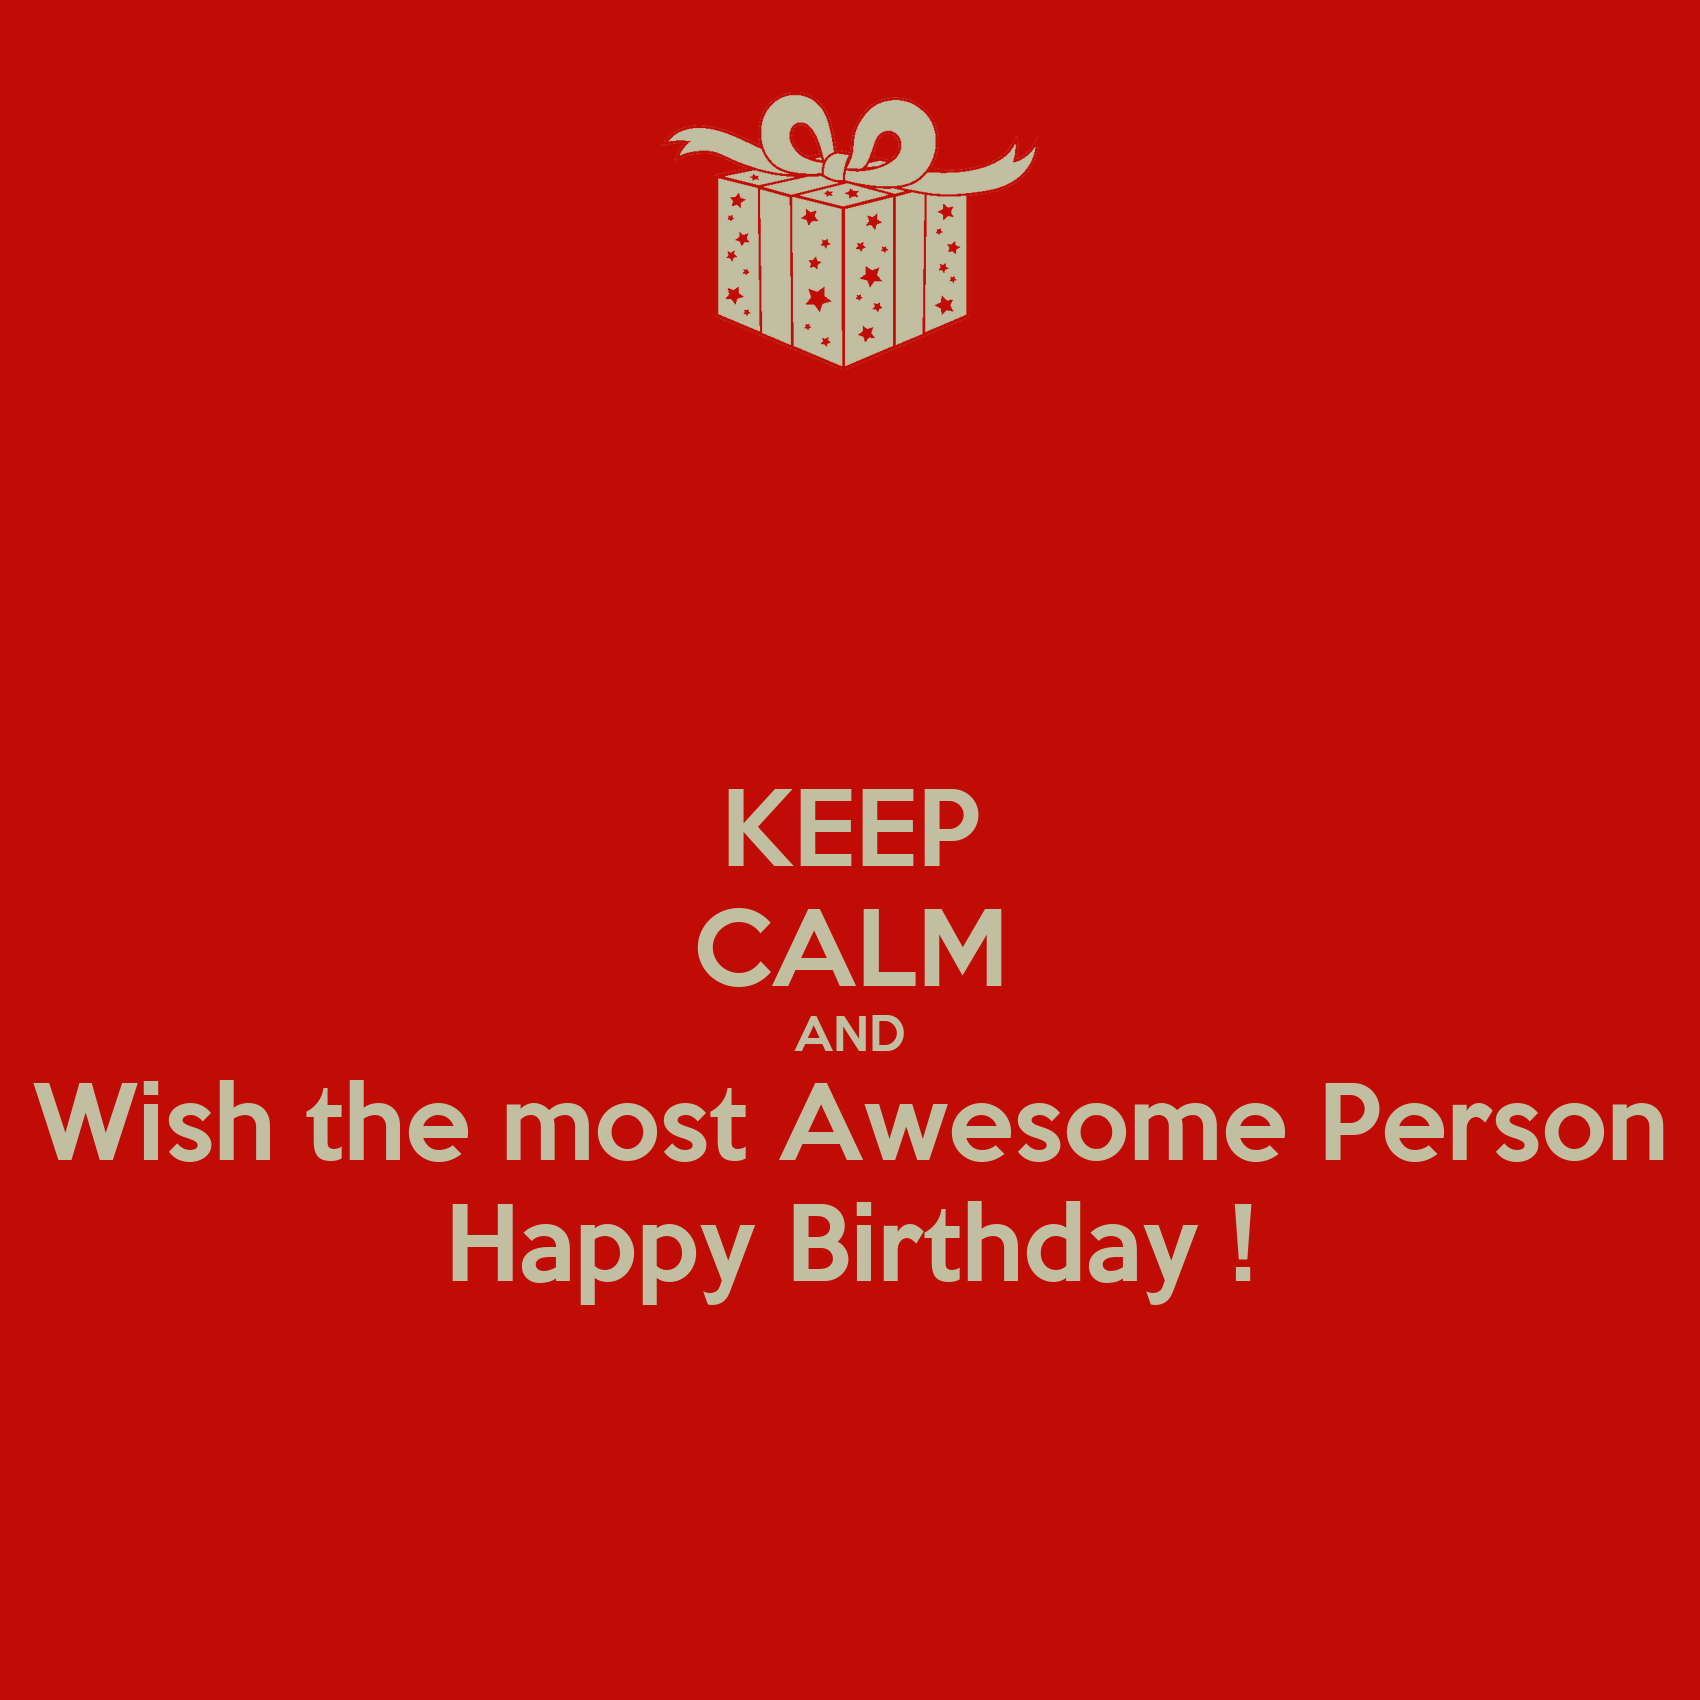 Keep Calm And Wish The Most Awesome Person Happy Birthday Last Person To Wish You Happy Birthday